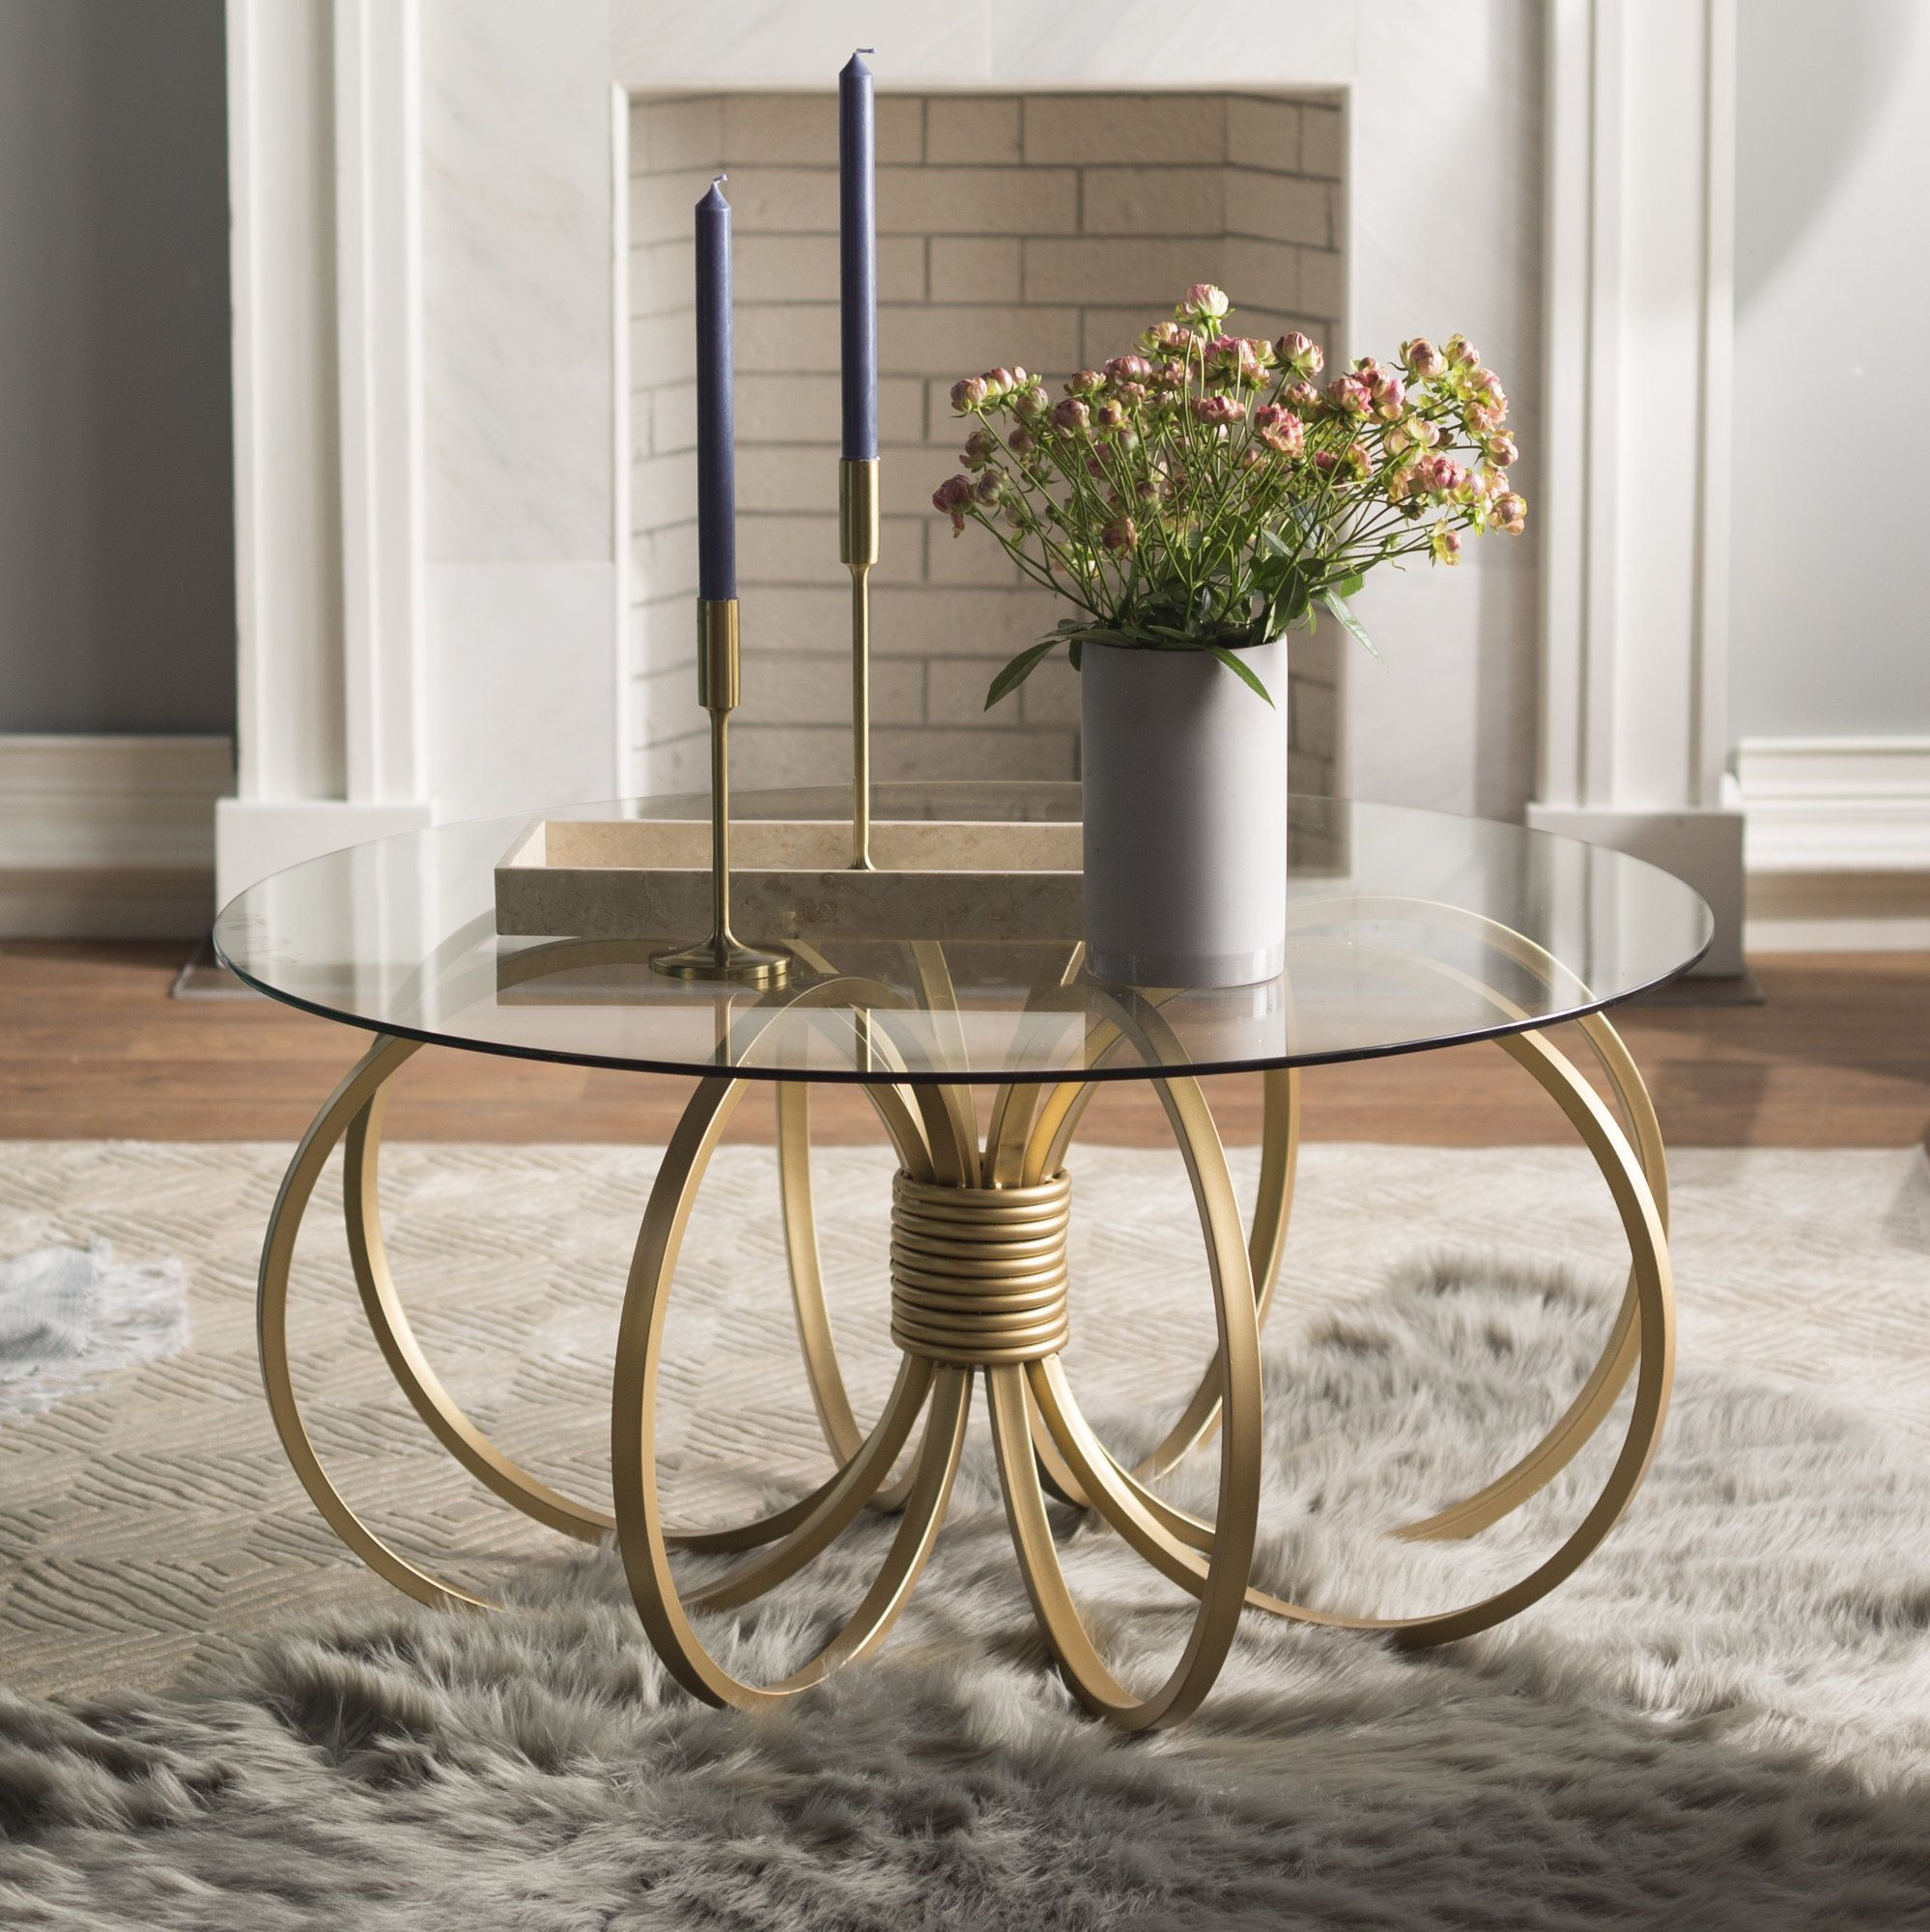 Isaloni 2019 Covethouse Table Decor Living Room Glass Table Living Room Coffee Table [ 2000 x 1998 Pixel ]